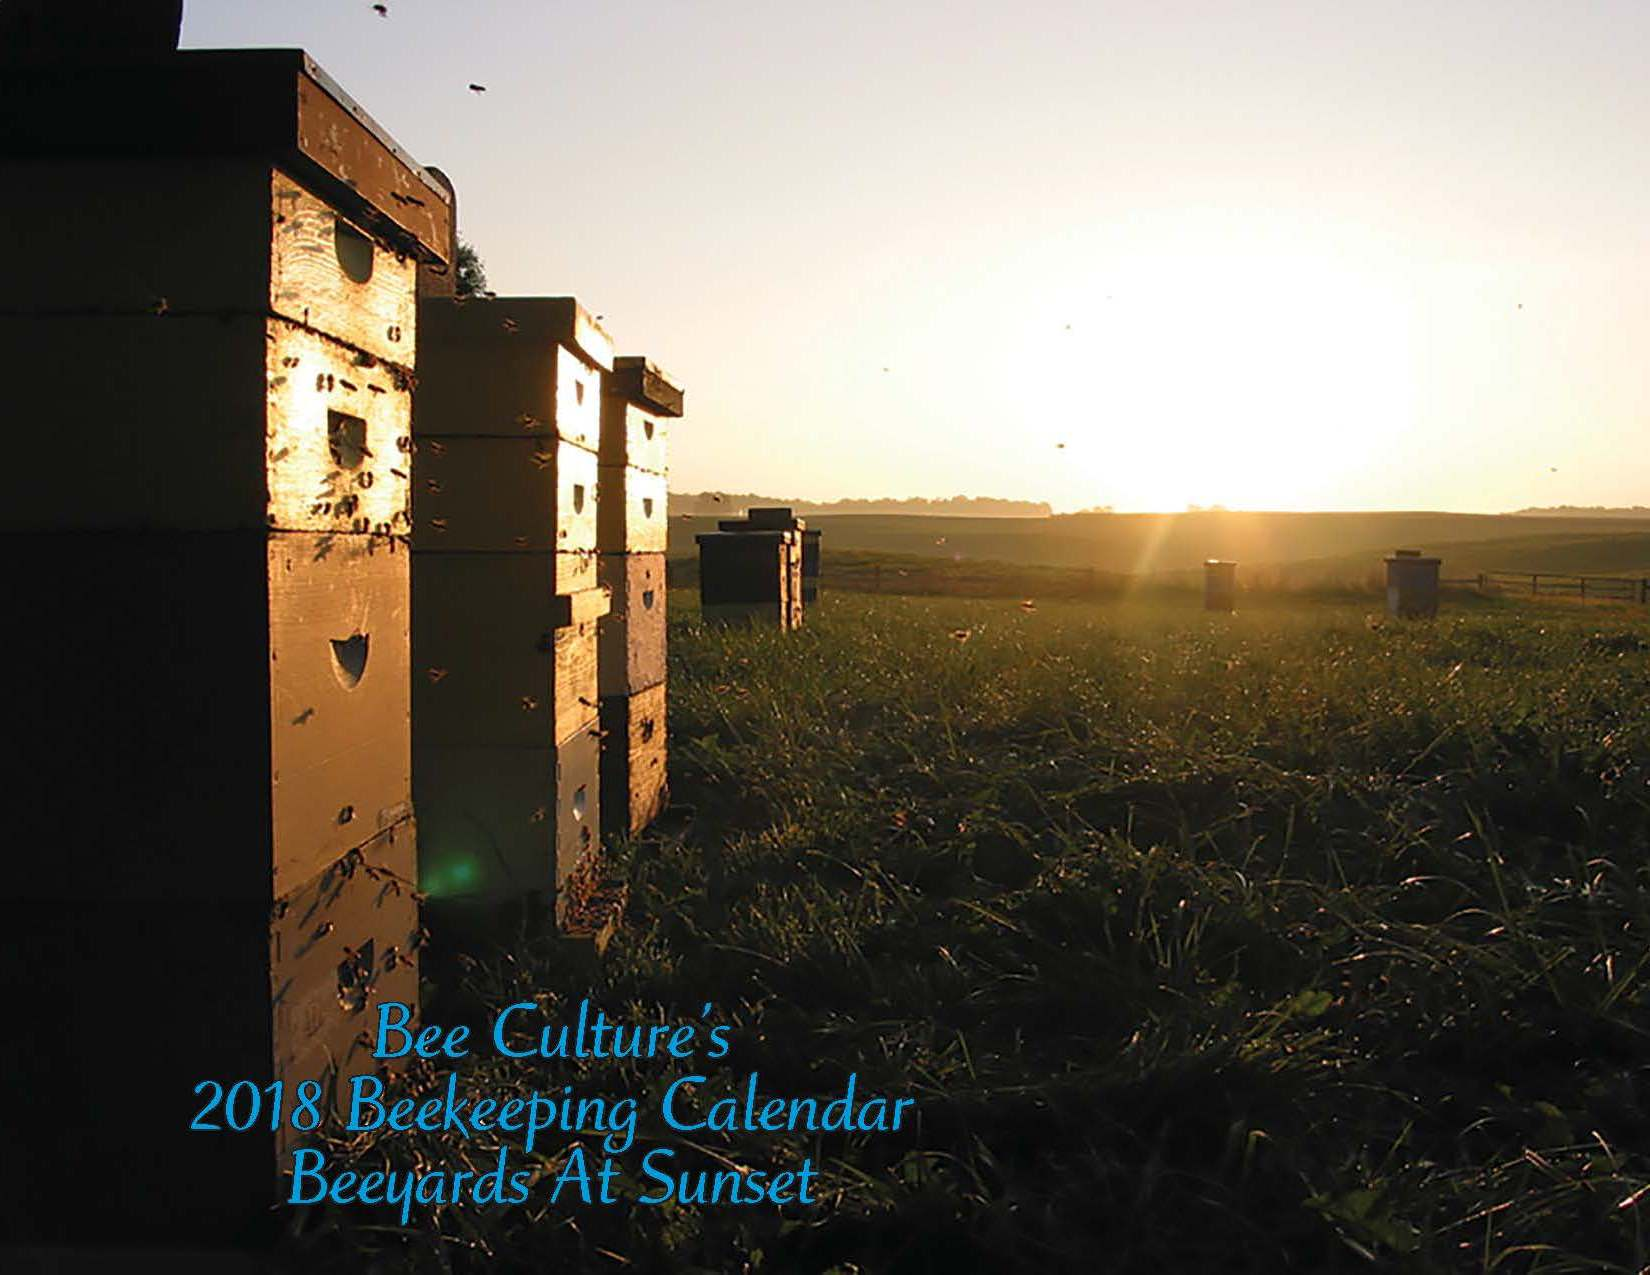 CATCH THE BUZZ – All the Calendars Are Gone!!